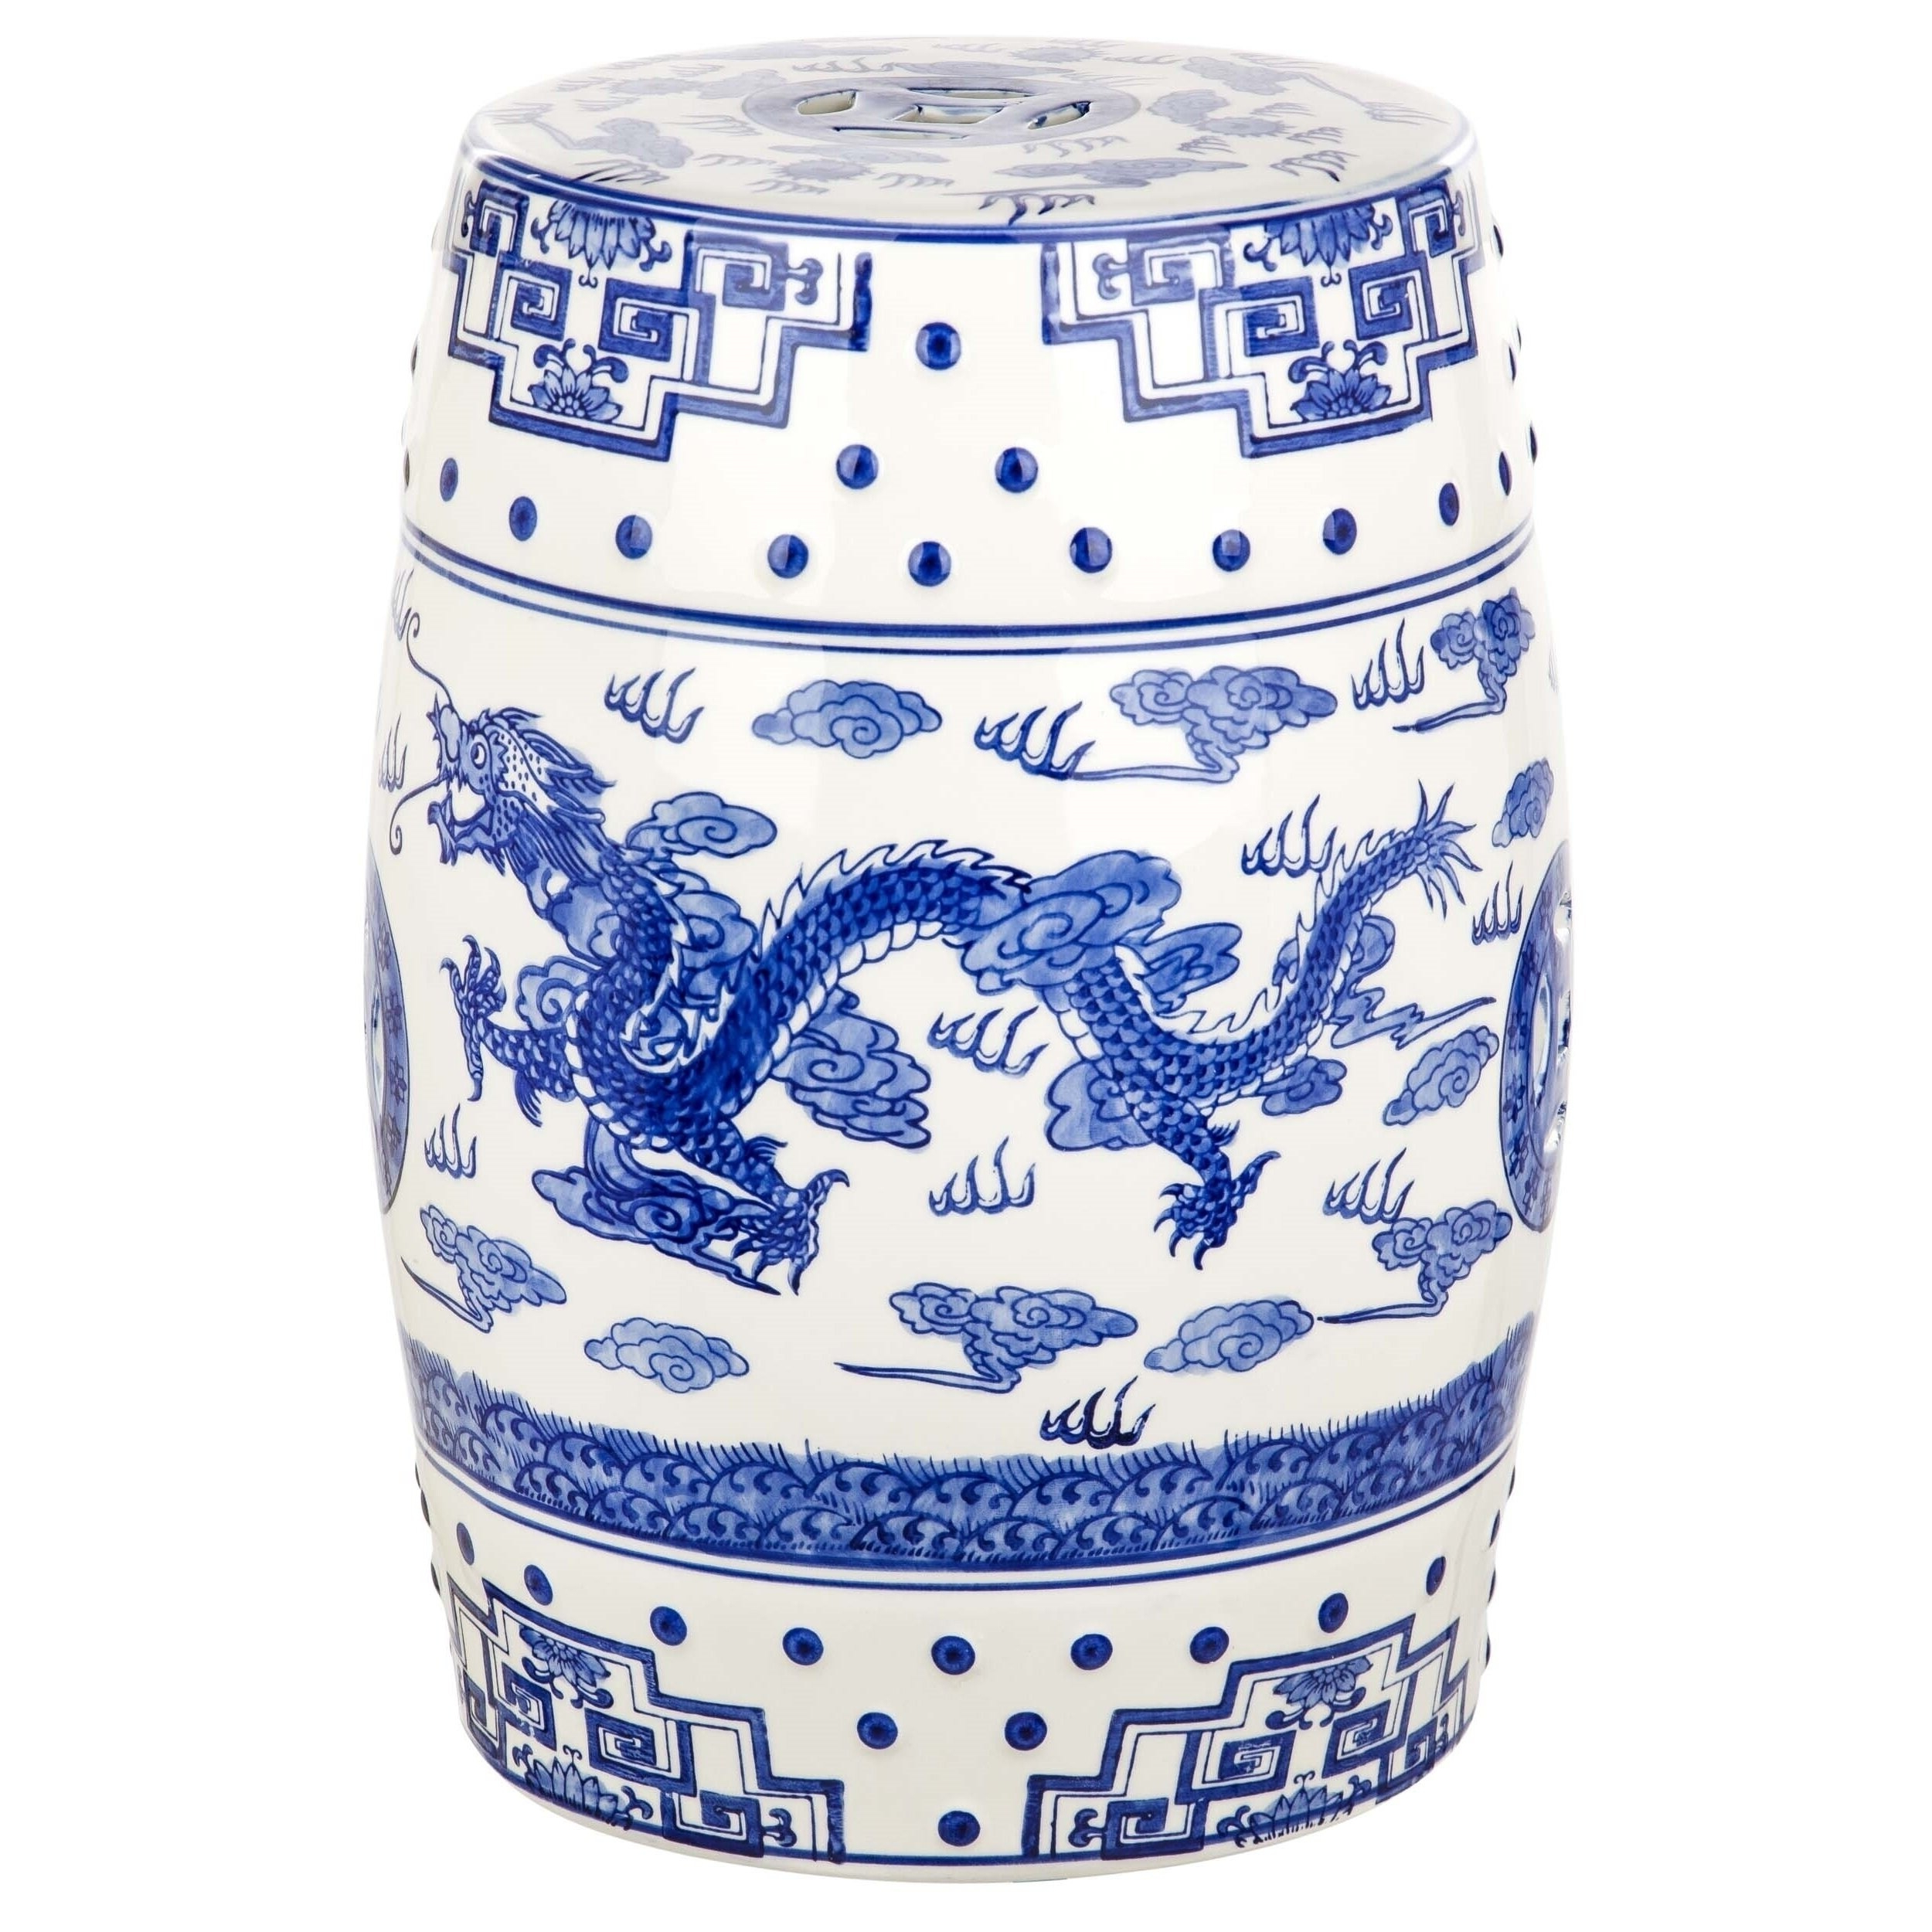 Most Recently Released Ceramic Garden Stools Pertaining To Safavieh Dragon's Breath Chinoiserie Blue Ceramic Decorative Garden Stool (View 22 of 30)